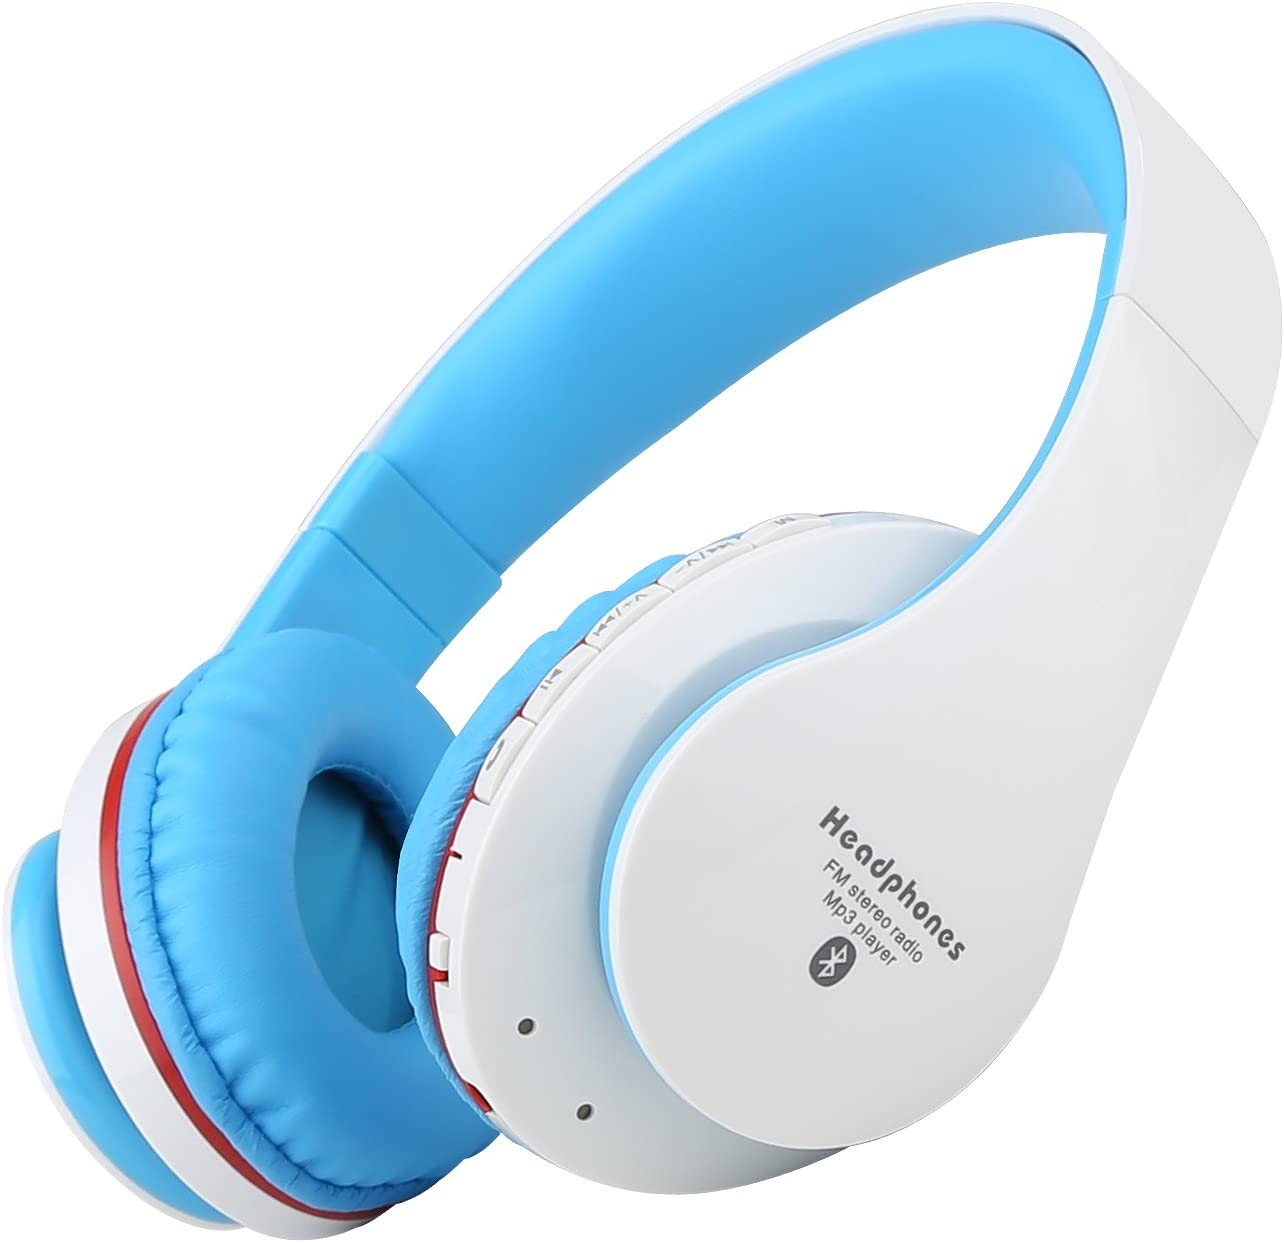 Bluetooth Headphones, Sound Intone Nk850 Wireless Headset with Microphone, Music Headphones with Adjustable Headband for Sporting, Traveling, Compatible with Cellphone, Laptop,pc,tablet (White/blue)